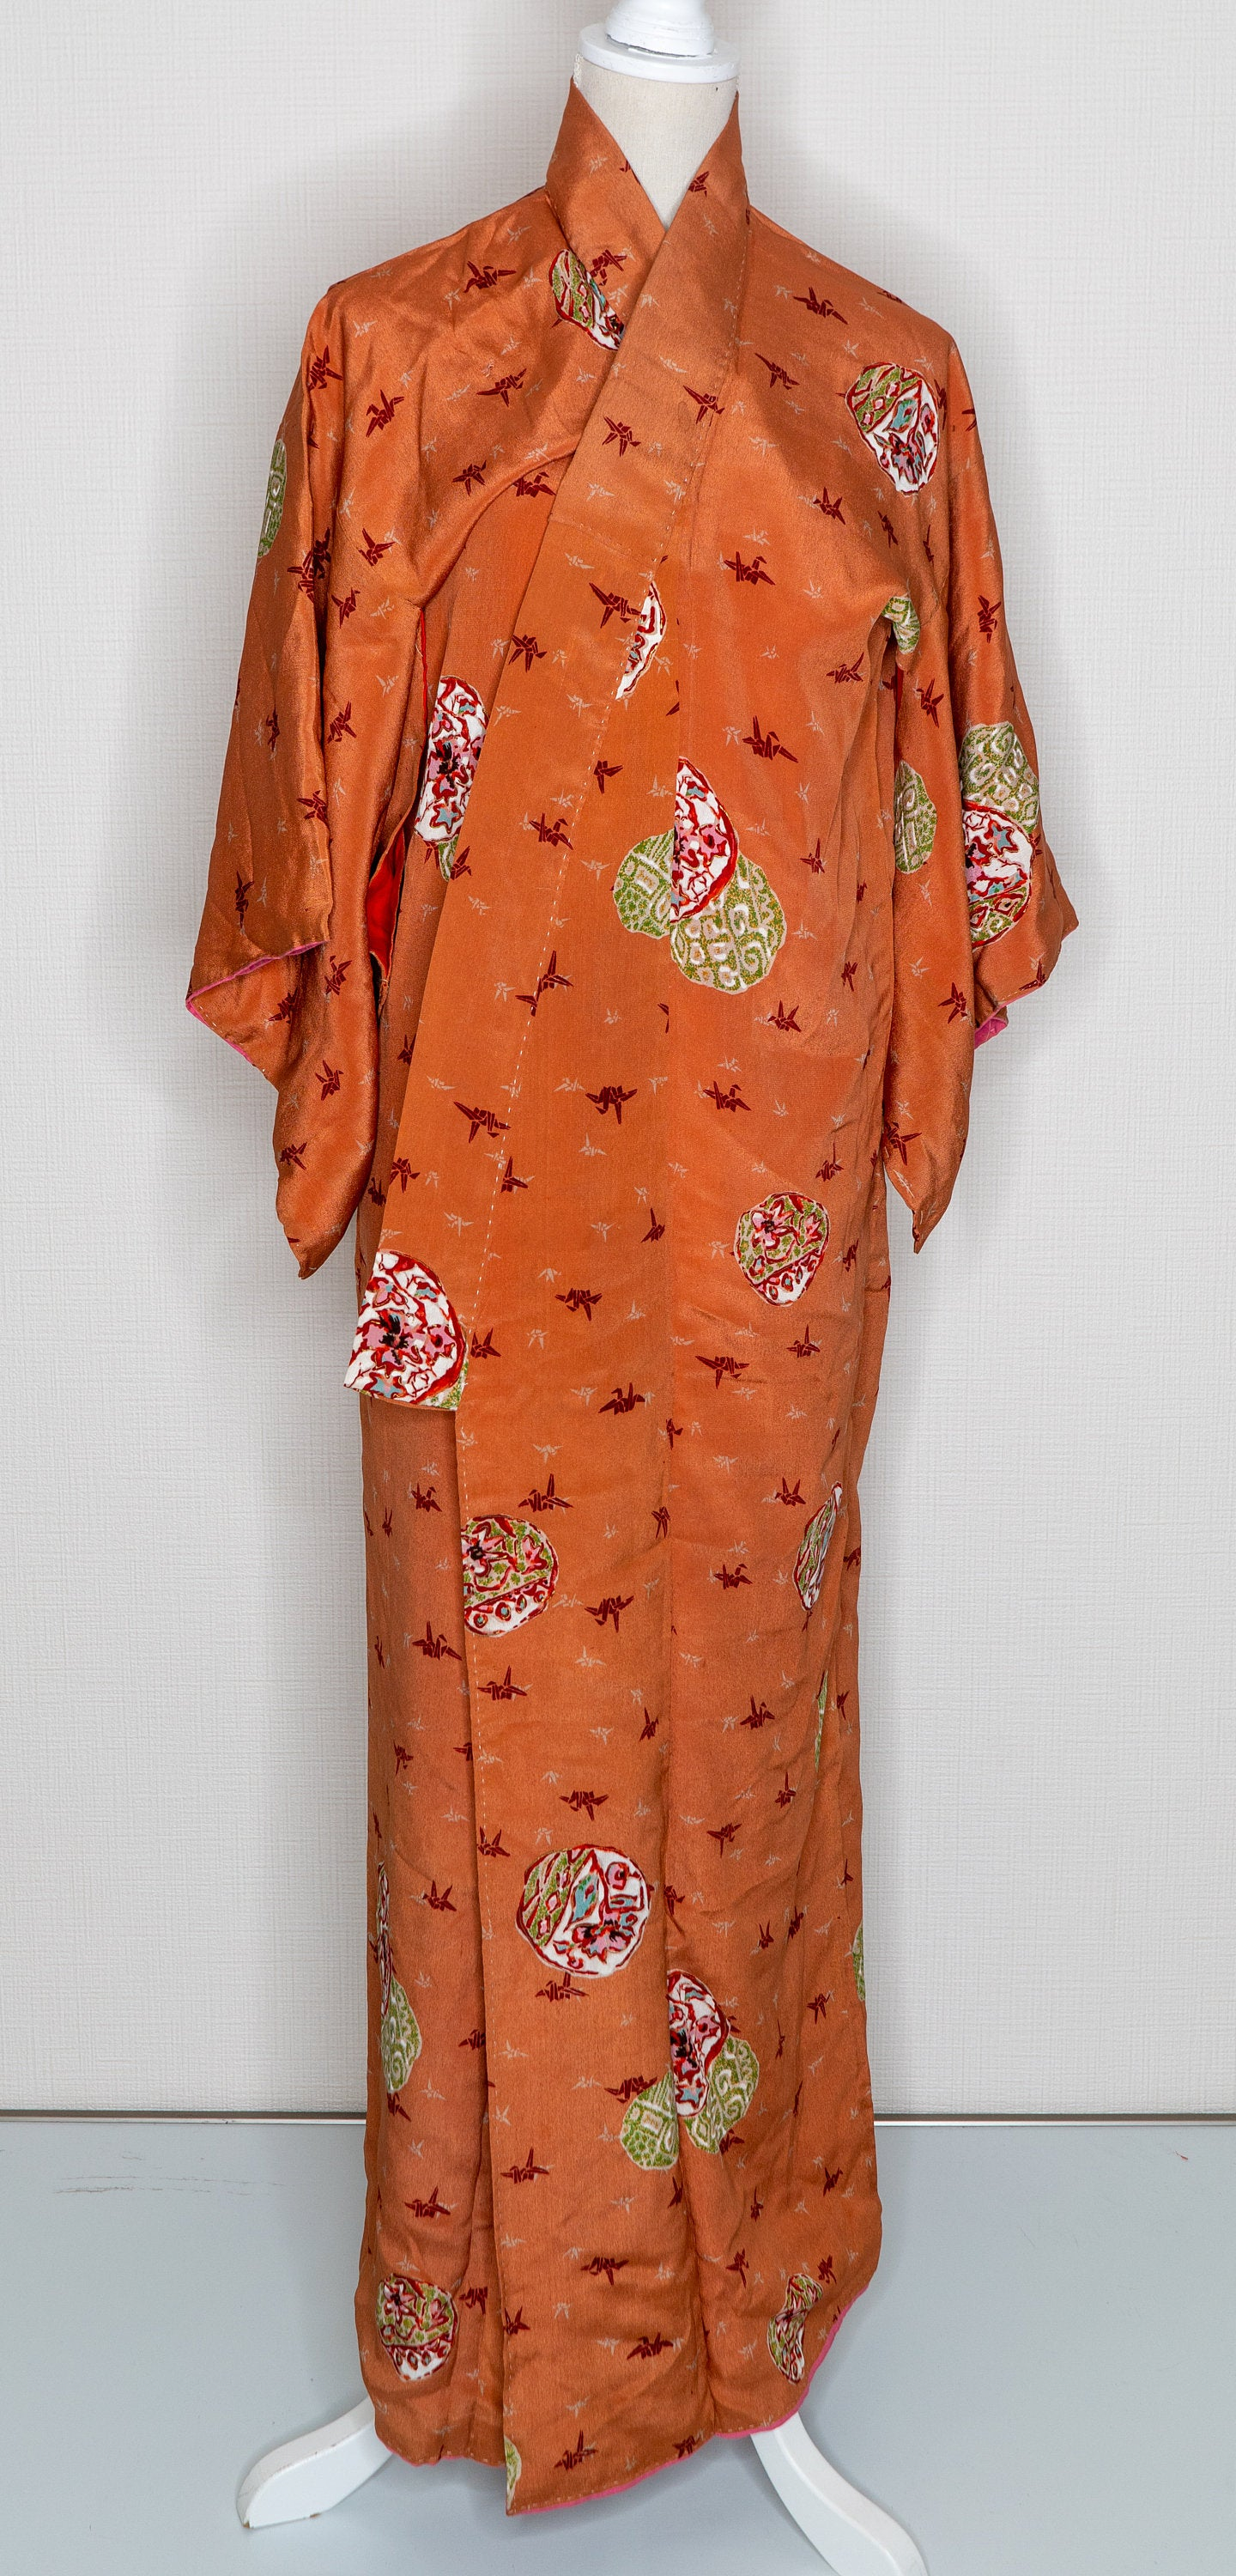 Orange Paper Cranes Kimono - Vintage 1960s Retro Traditional Abstract Circle Maru Floral Designs